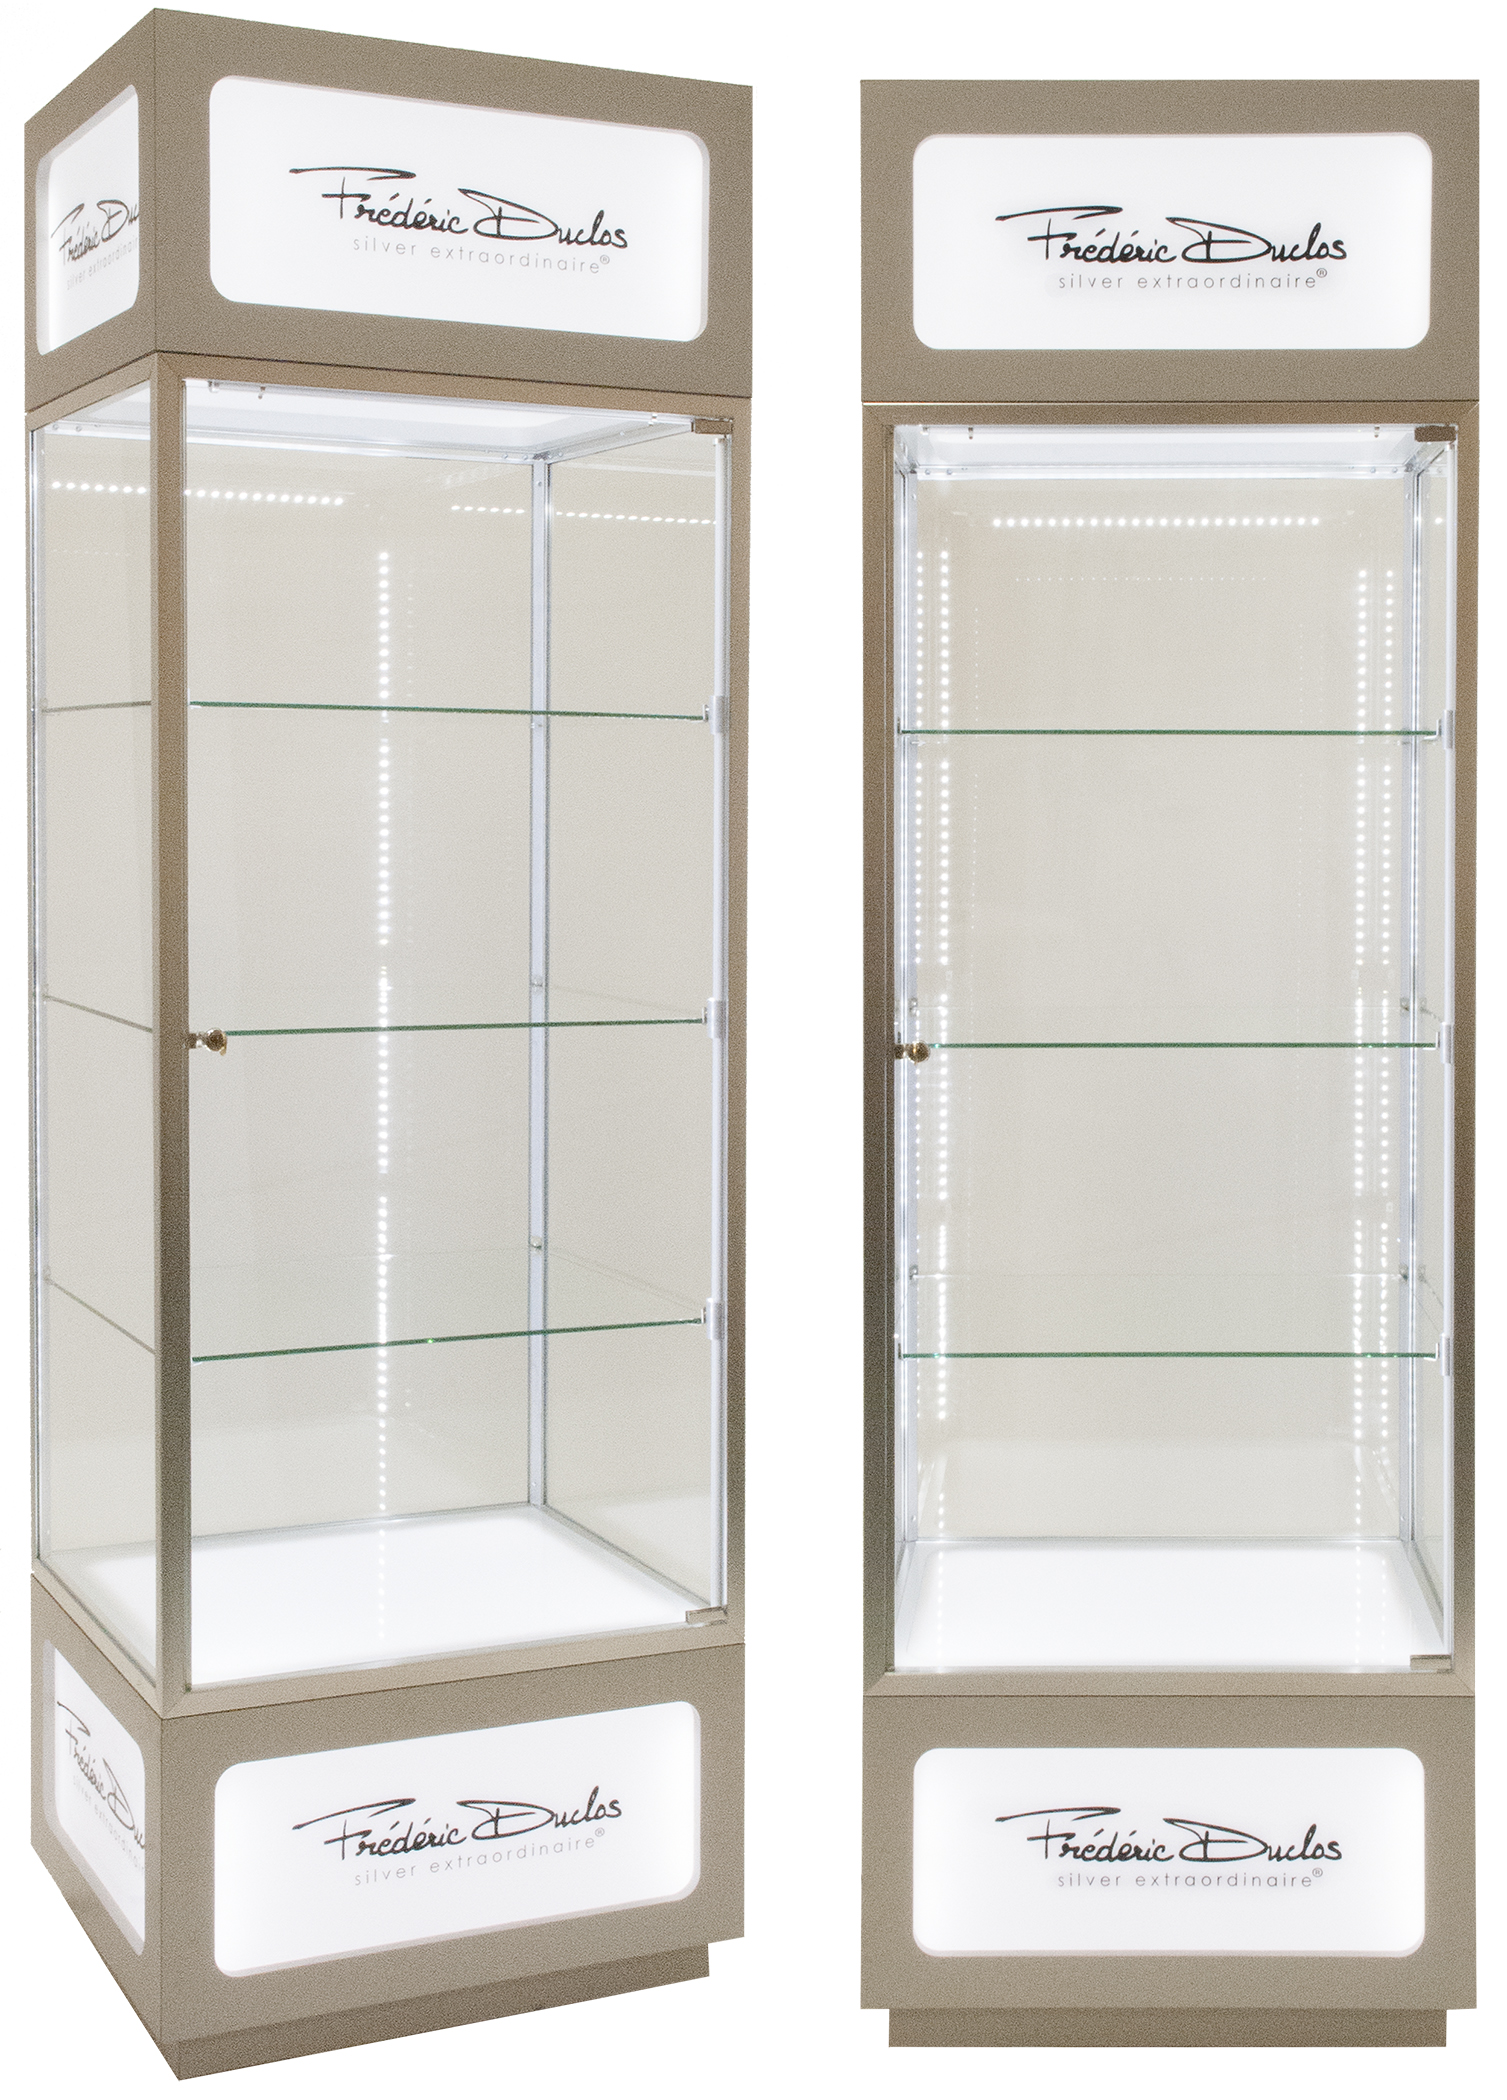 Illuminated Product Display Case Tower